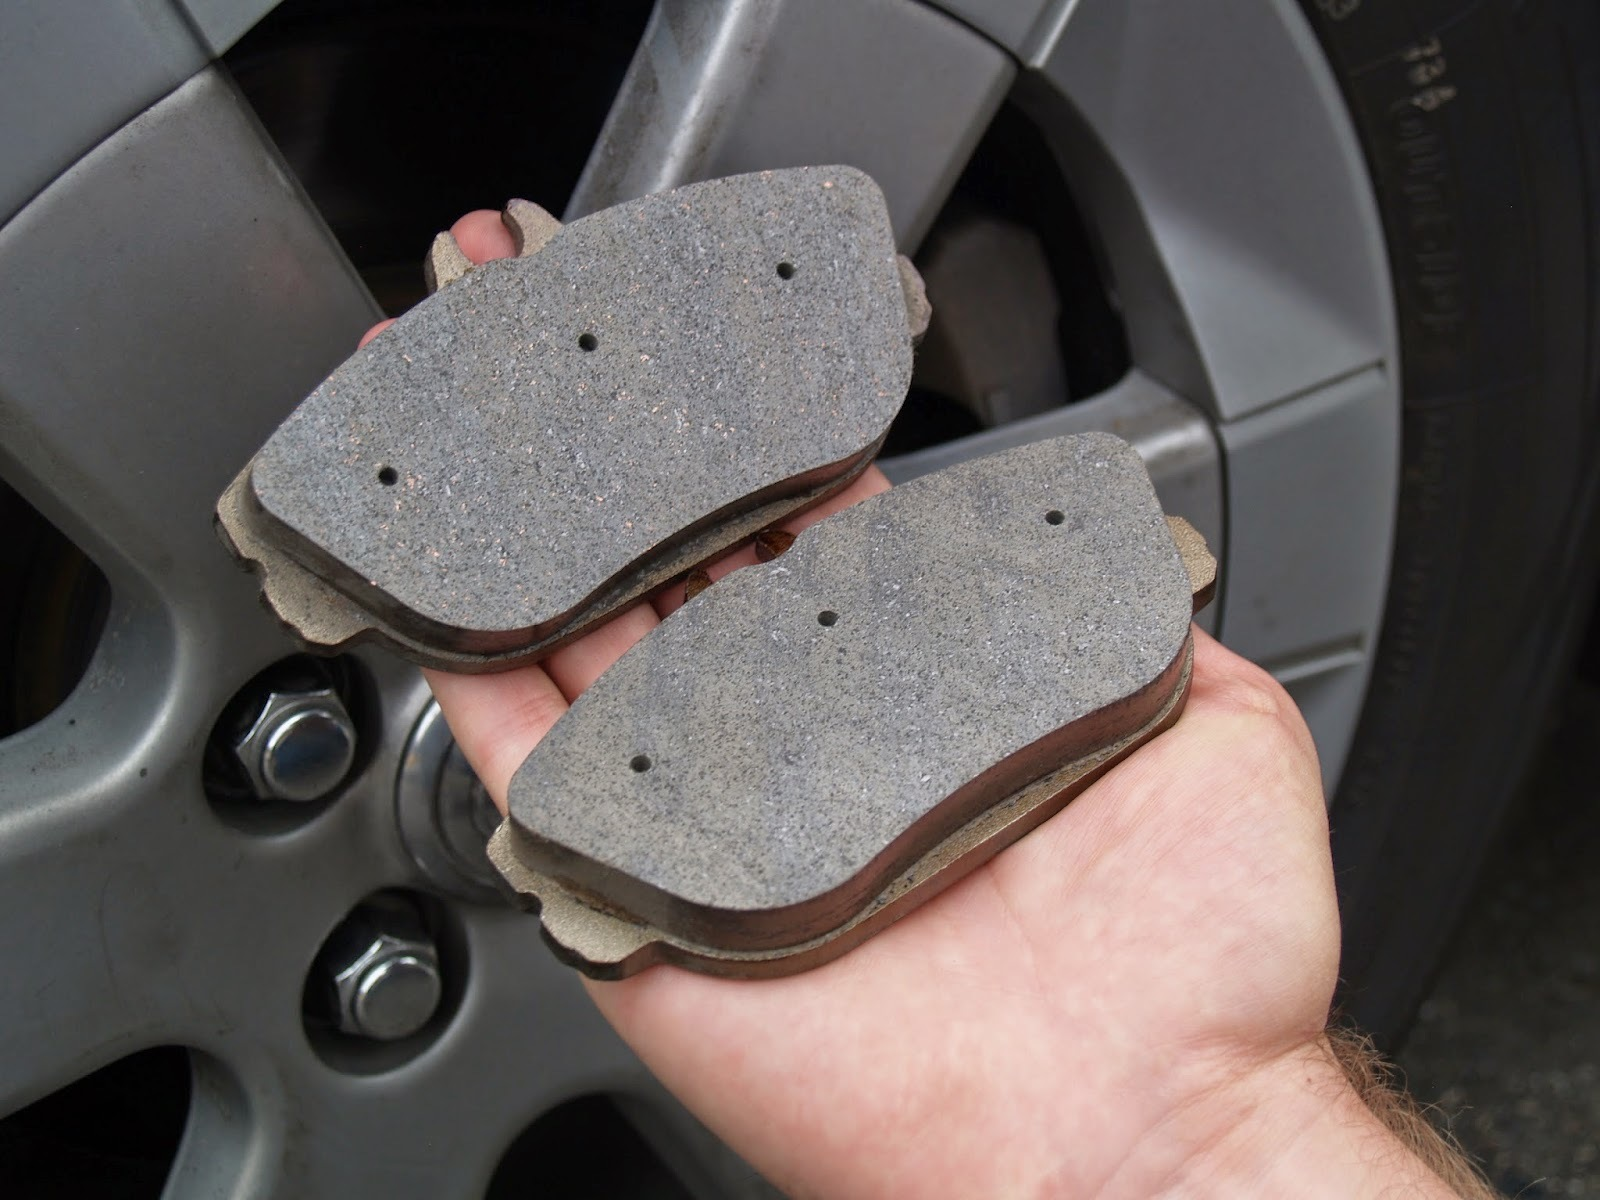 Common automotive break pads contain heavy metals, including copper, that are deposited onto the roadway every time we brake.